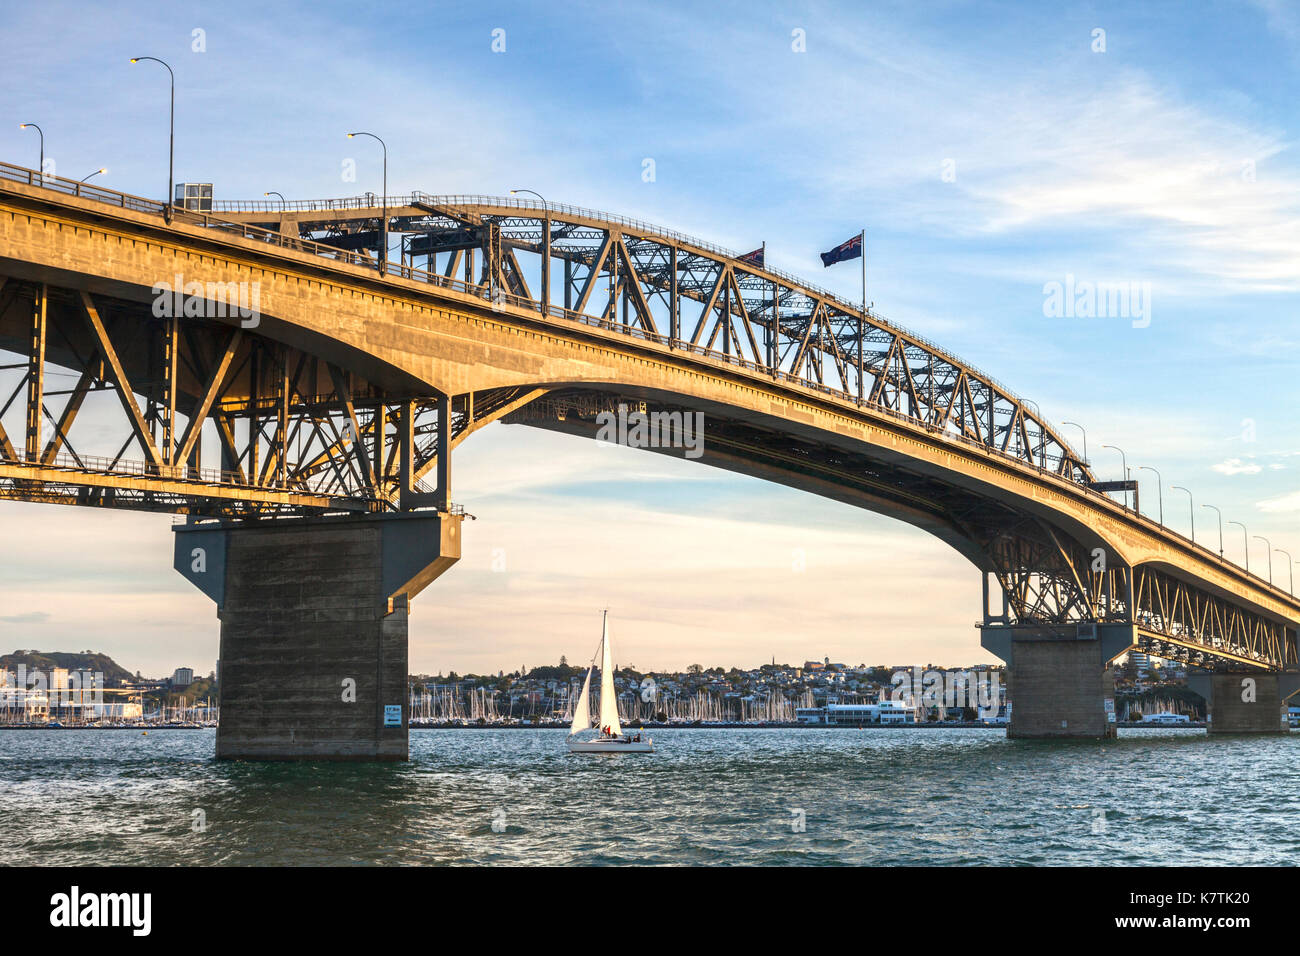 Auckland Harbour Bridge in evening light with yacht passing under. - Stock Image